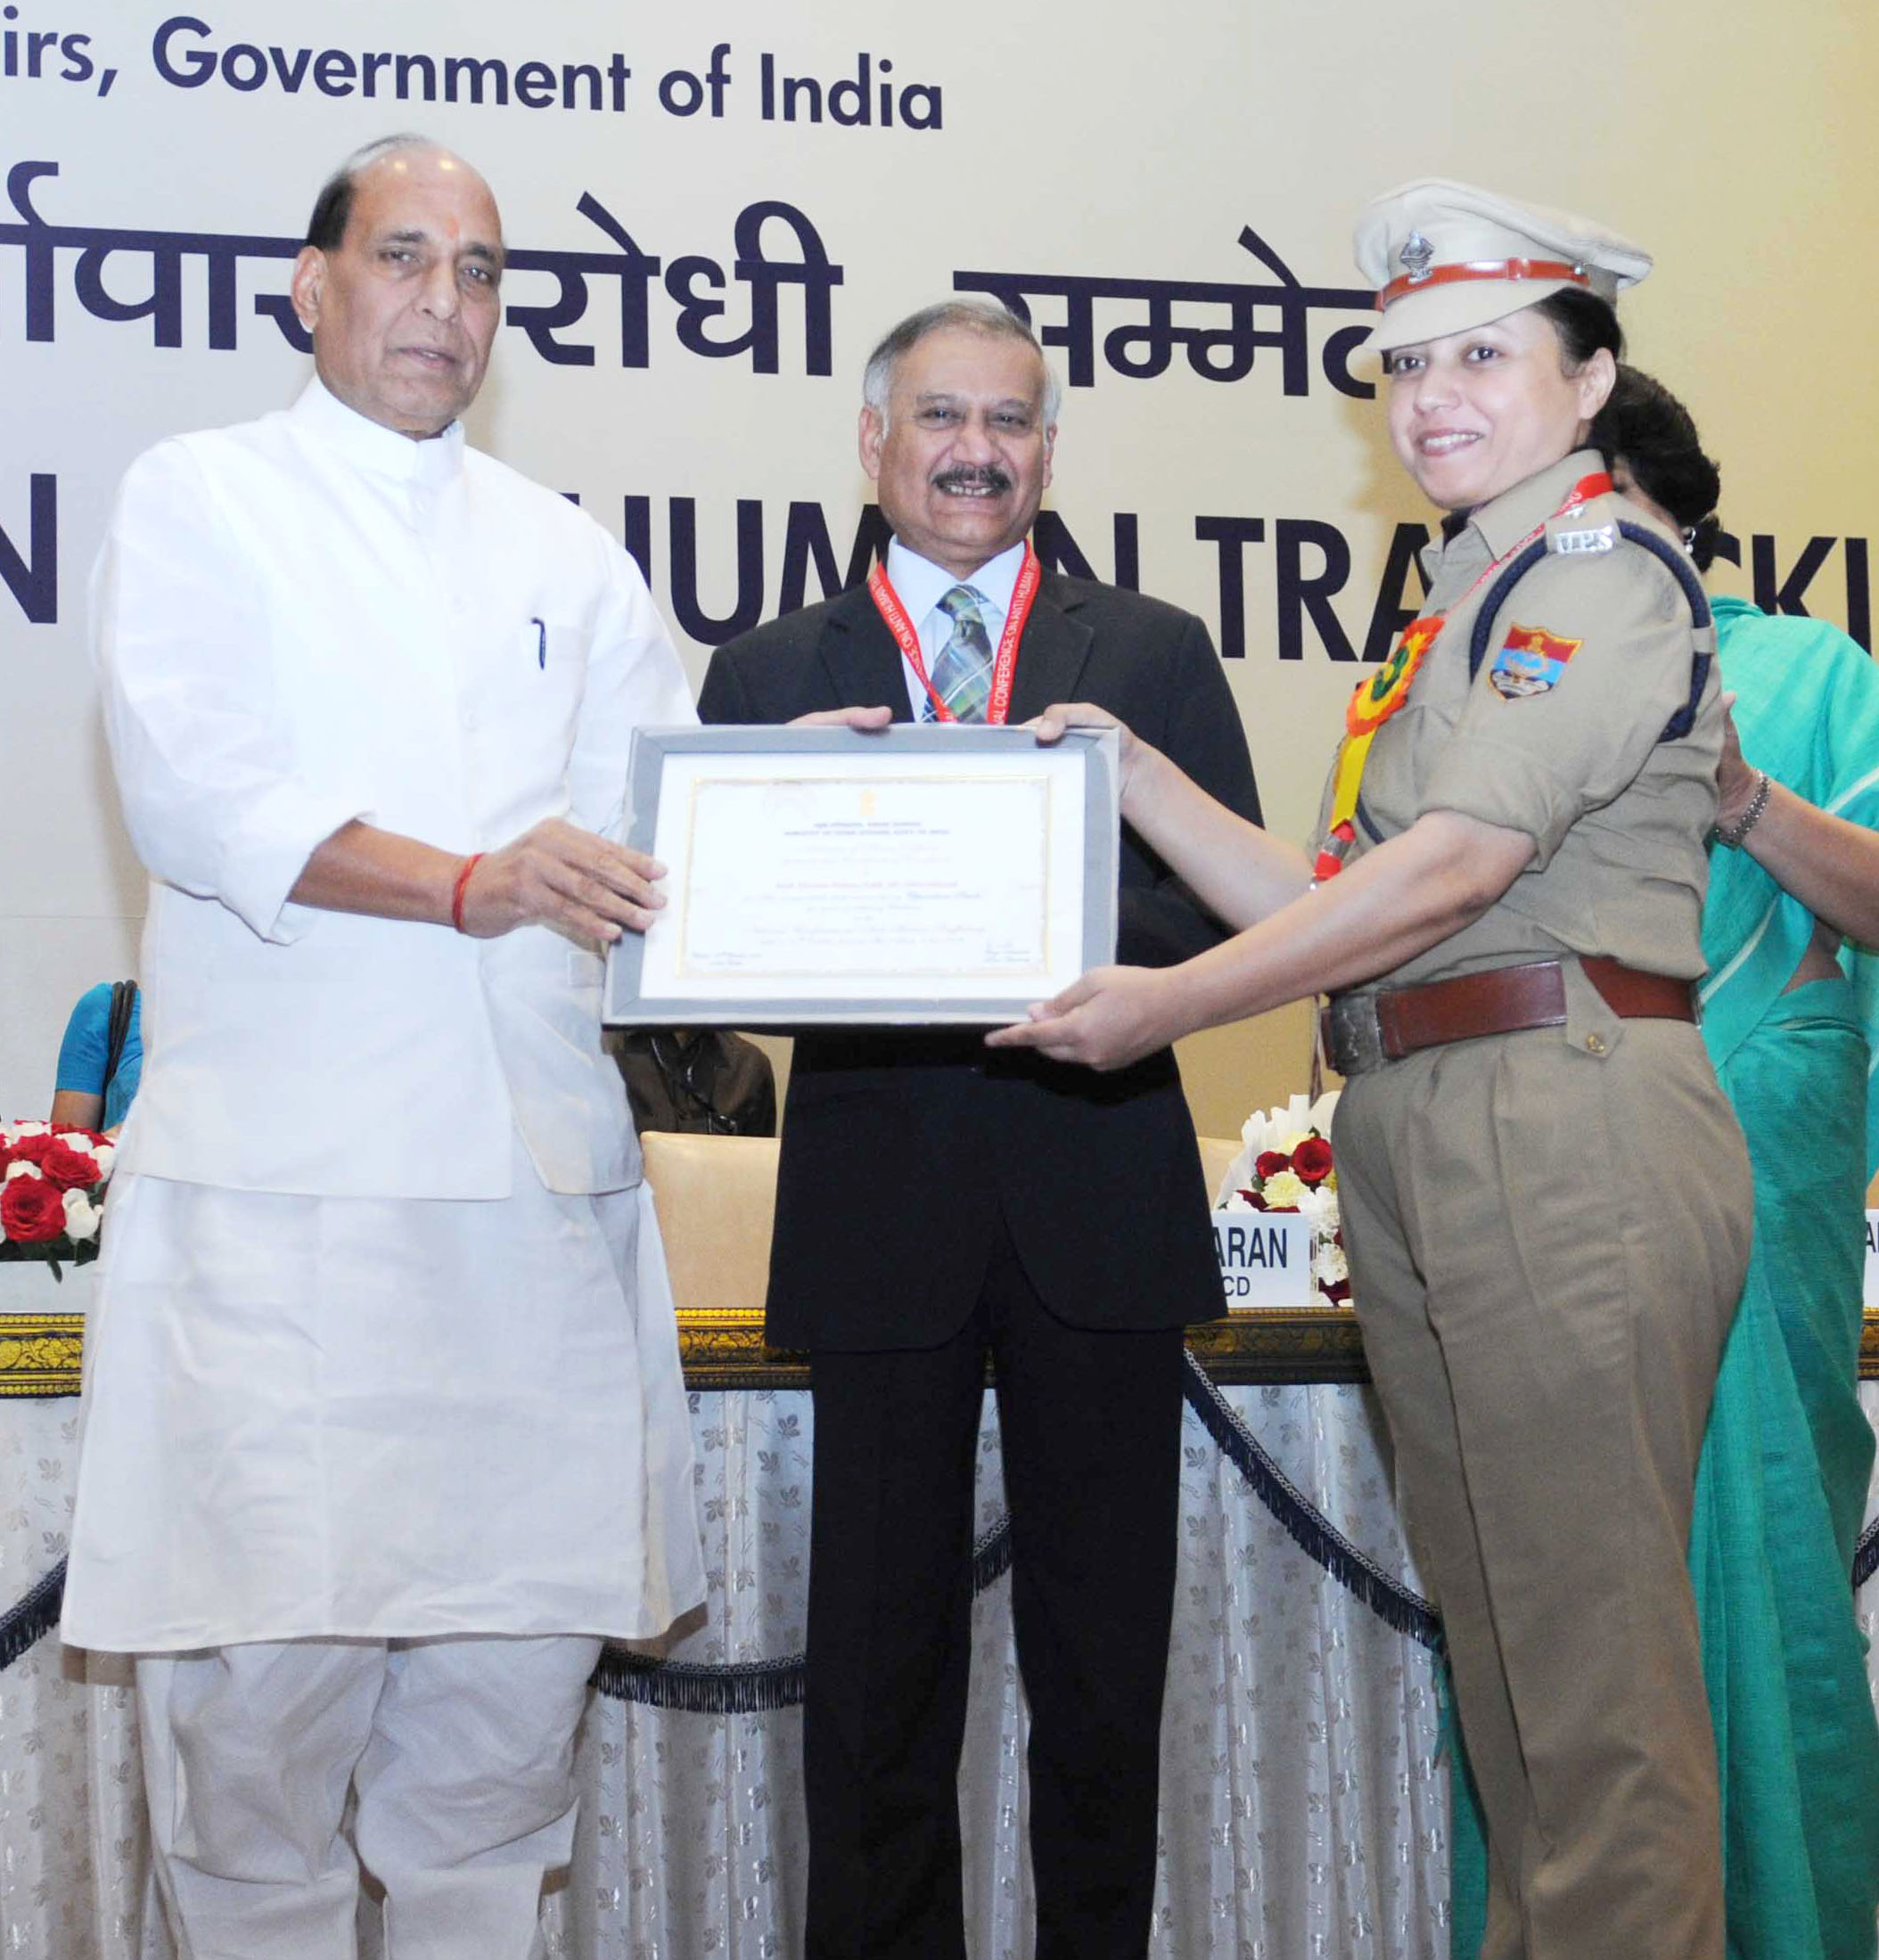 The Union Home Minister, Shri Rajnath Singh presented the certificates to top performers of 'Operation Smile', at the inauguration of the National Conference on Anti Human Trafficking, in New Delhi on October 07, 2015. The Director, CBI, Shri Anil Kumar Sinha is also seen.